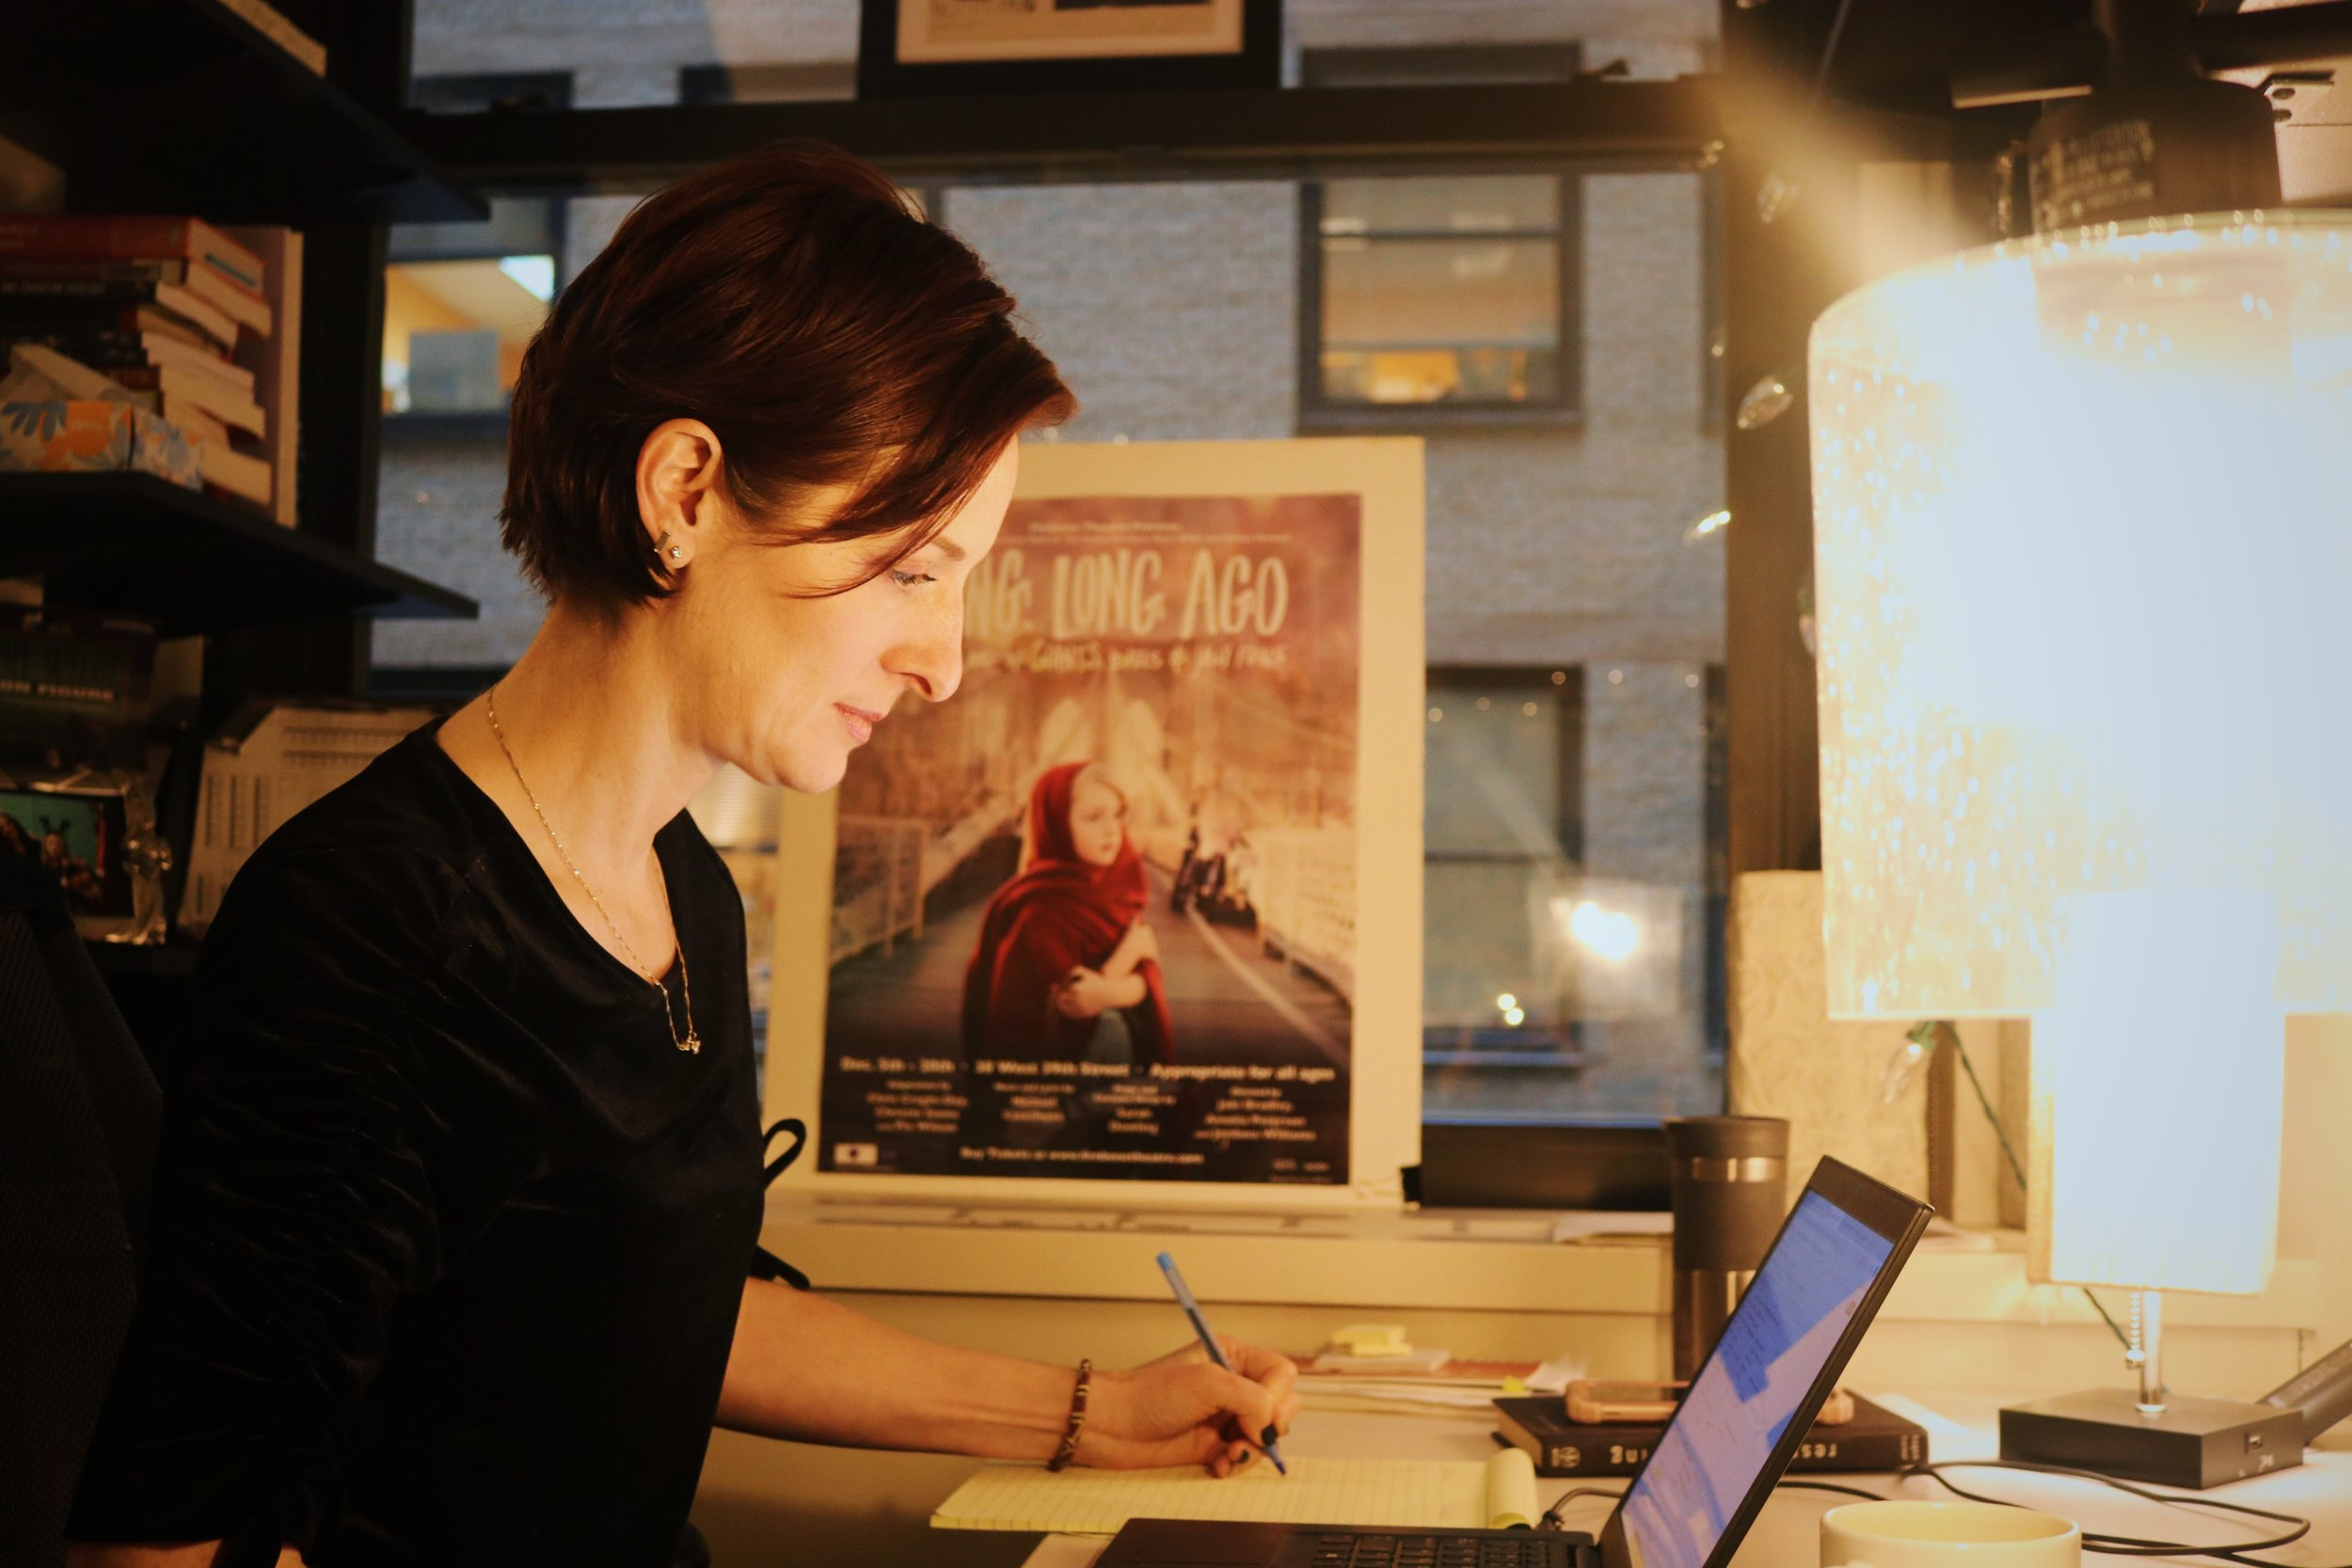 Cragin-Day works by the glow of the fairy lights strung around her desk. || Photo credit to Rachel Freeman